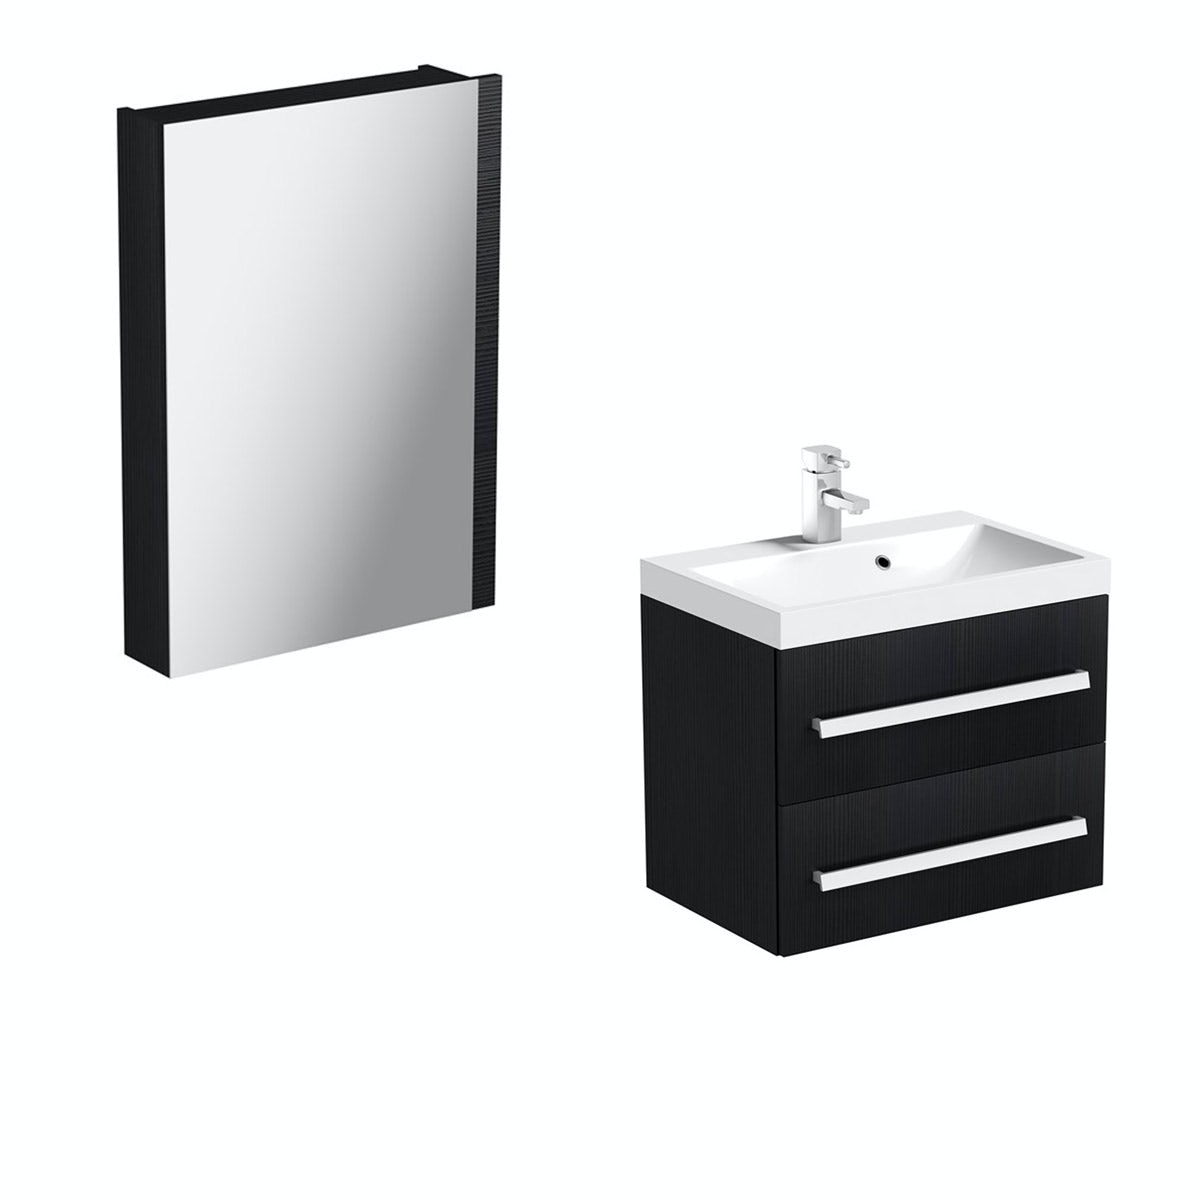 Arden Essen Wall Hung Vanity Unit With Basin & Mirror - 600mm